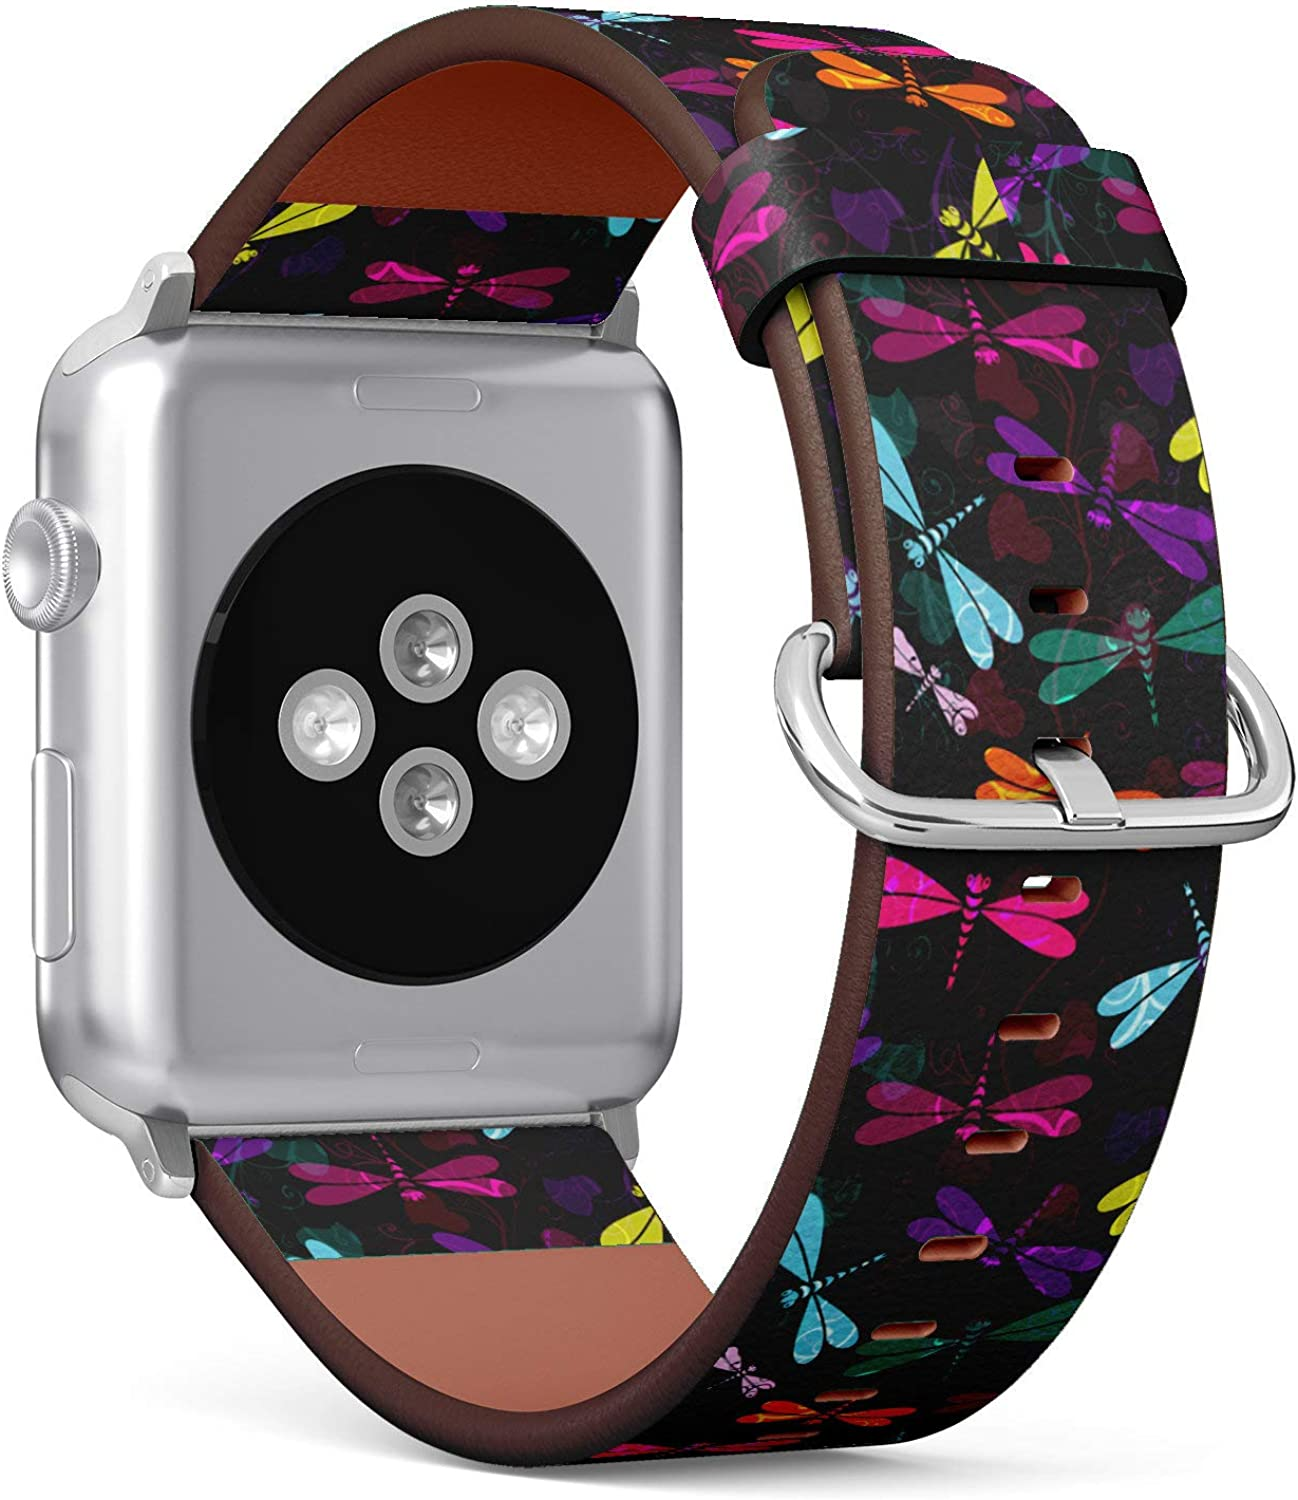 (Vintage Pattern with Colorful Dragonflies and Translucent) Patterned Leather Wristband Strap for Apple Watch Series 4/3/2/1 gen,Replacement for iWatch 42mm / 44mm Bands